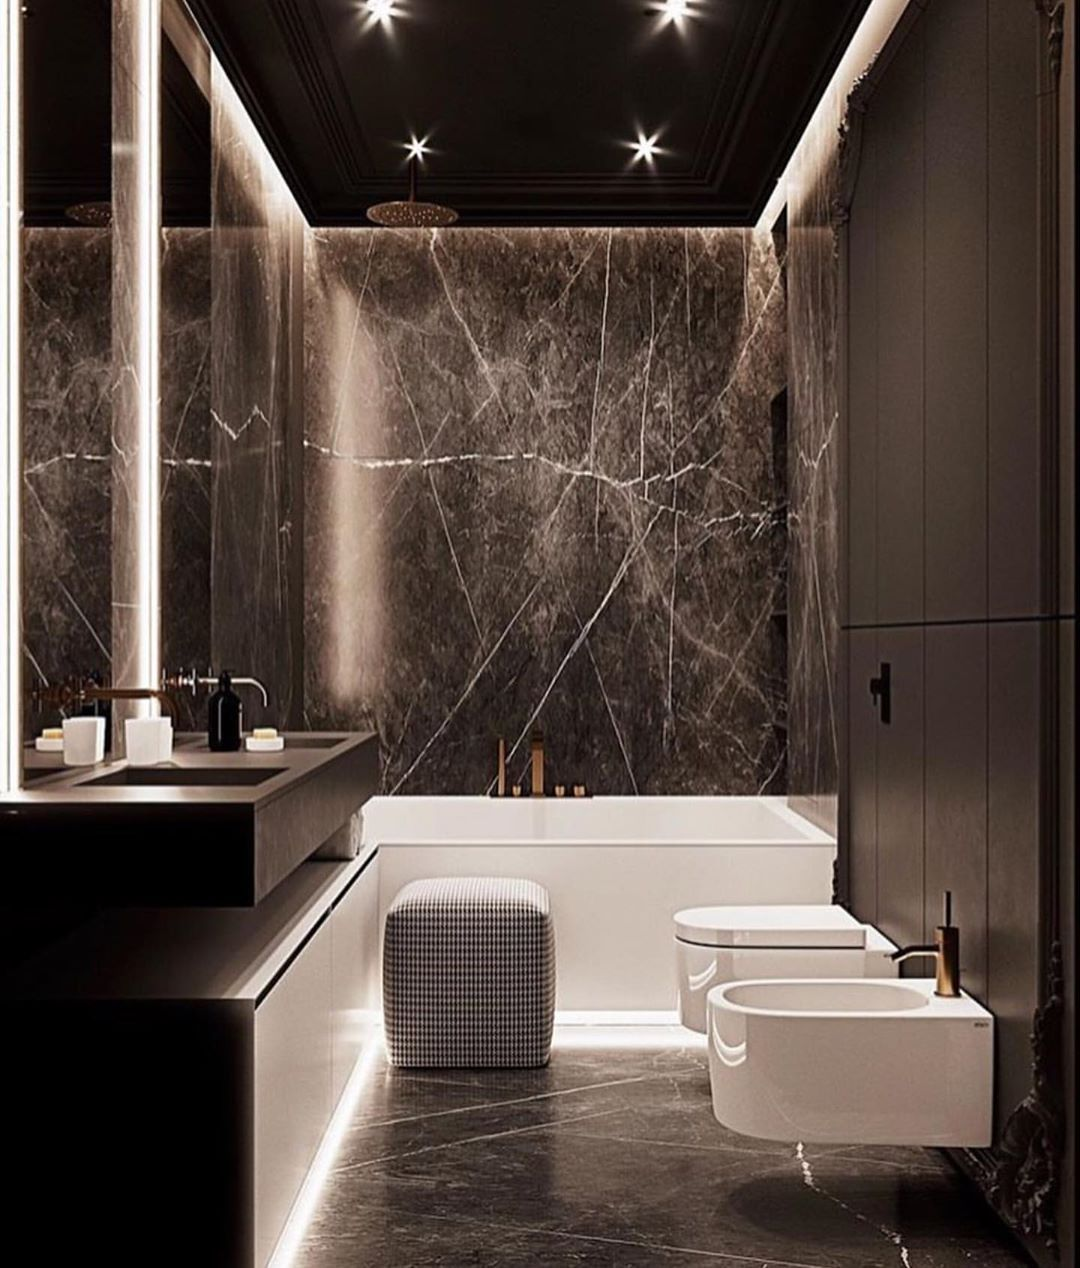 999 Best Bathroom Design Ideas Homedecor Bathroom Bathroomdecor Bathroom Interior Design Modern Bathroom Design Bathroom Design Decor